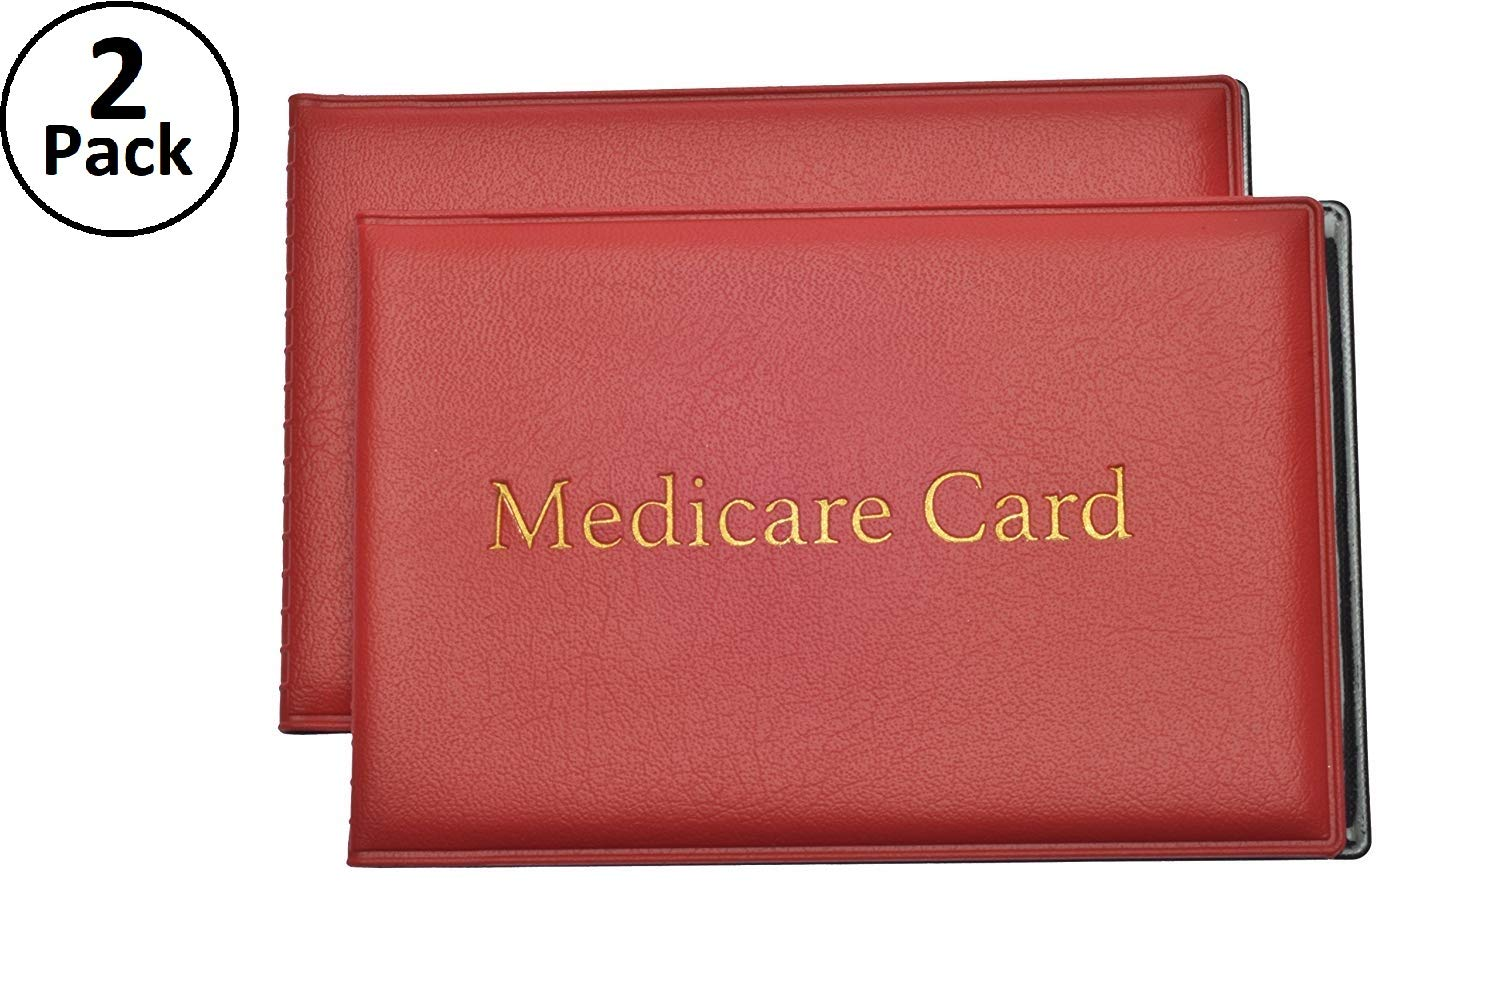 Medicare Card Protector with 2 Clear Card Sleeves - Holds Medical Prescriptions, Social Security Card, Driver License, Health Insurance, ID, Credit Card Holders, Blue, 2 Pack True Snap